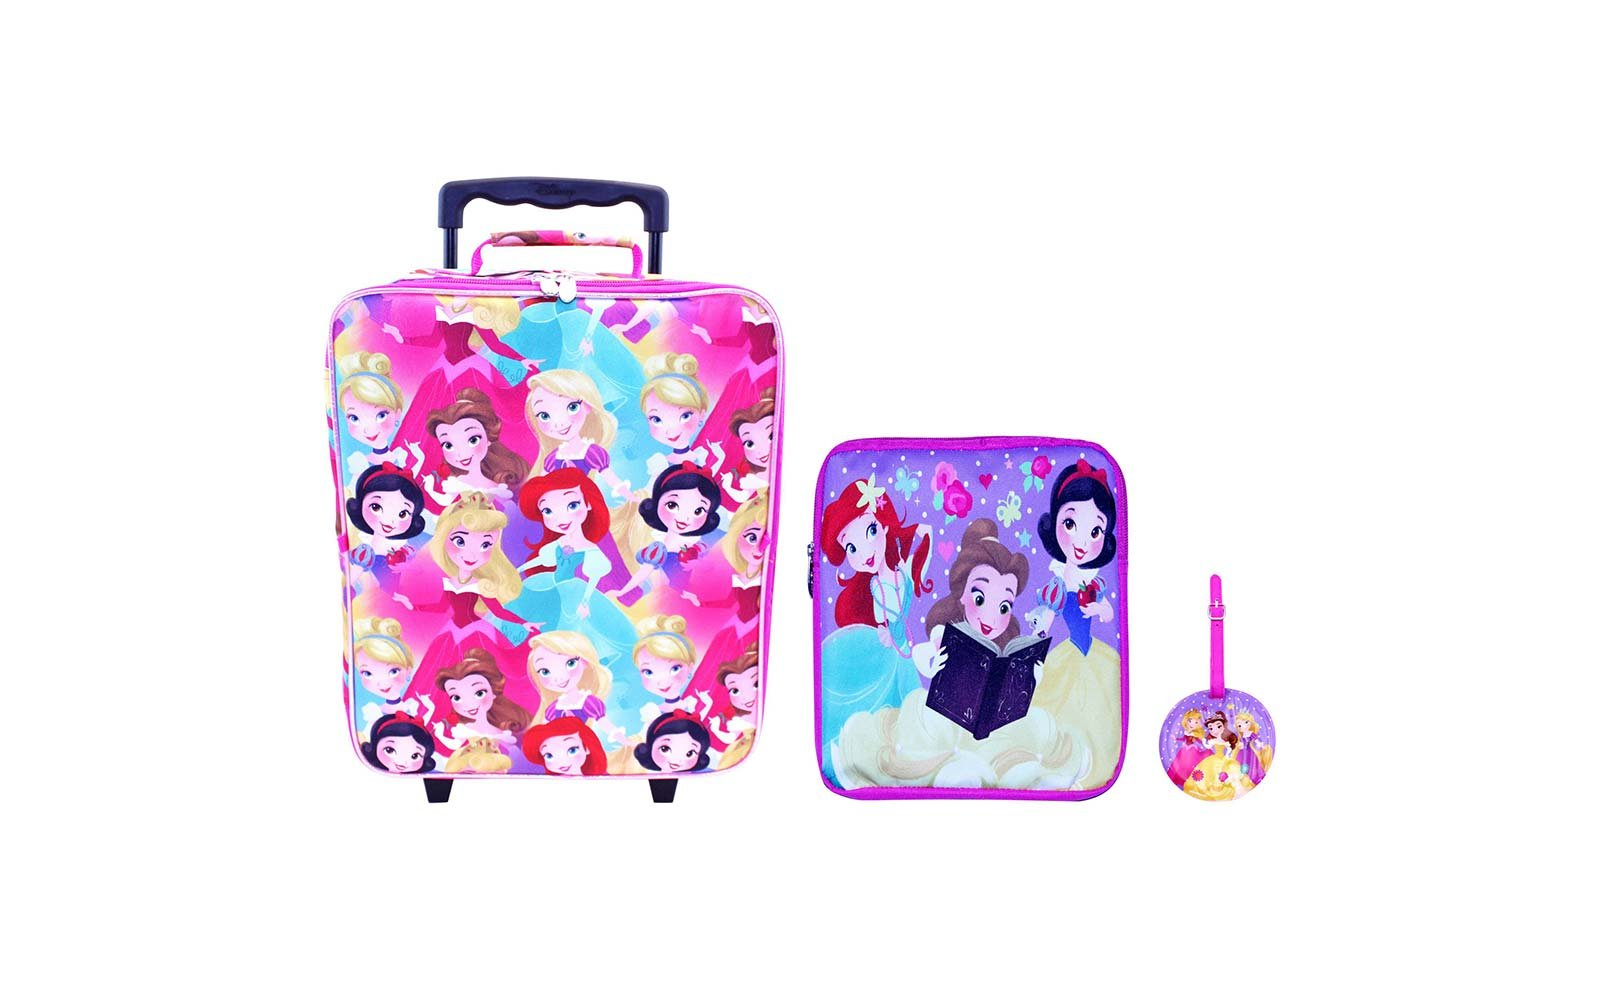 disney princess luggage set suitcase